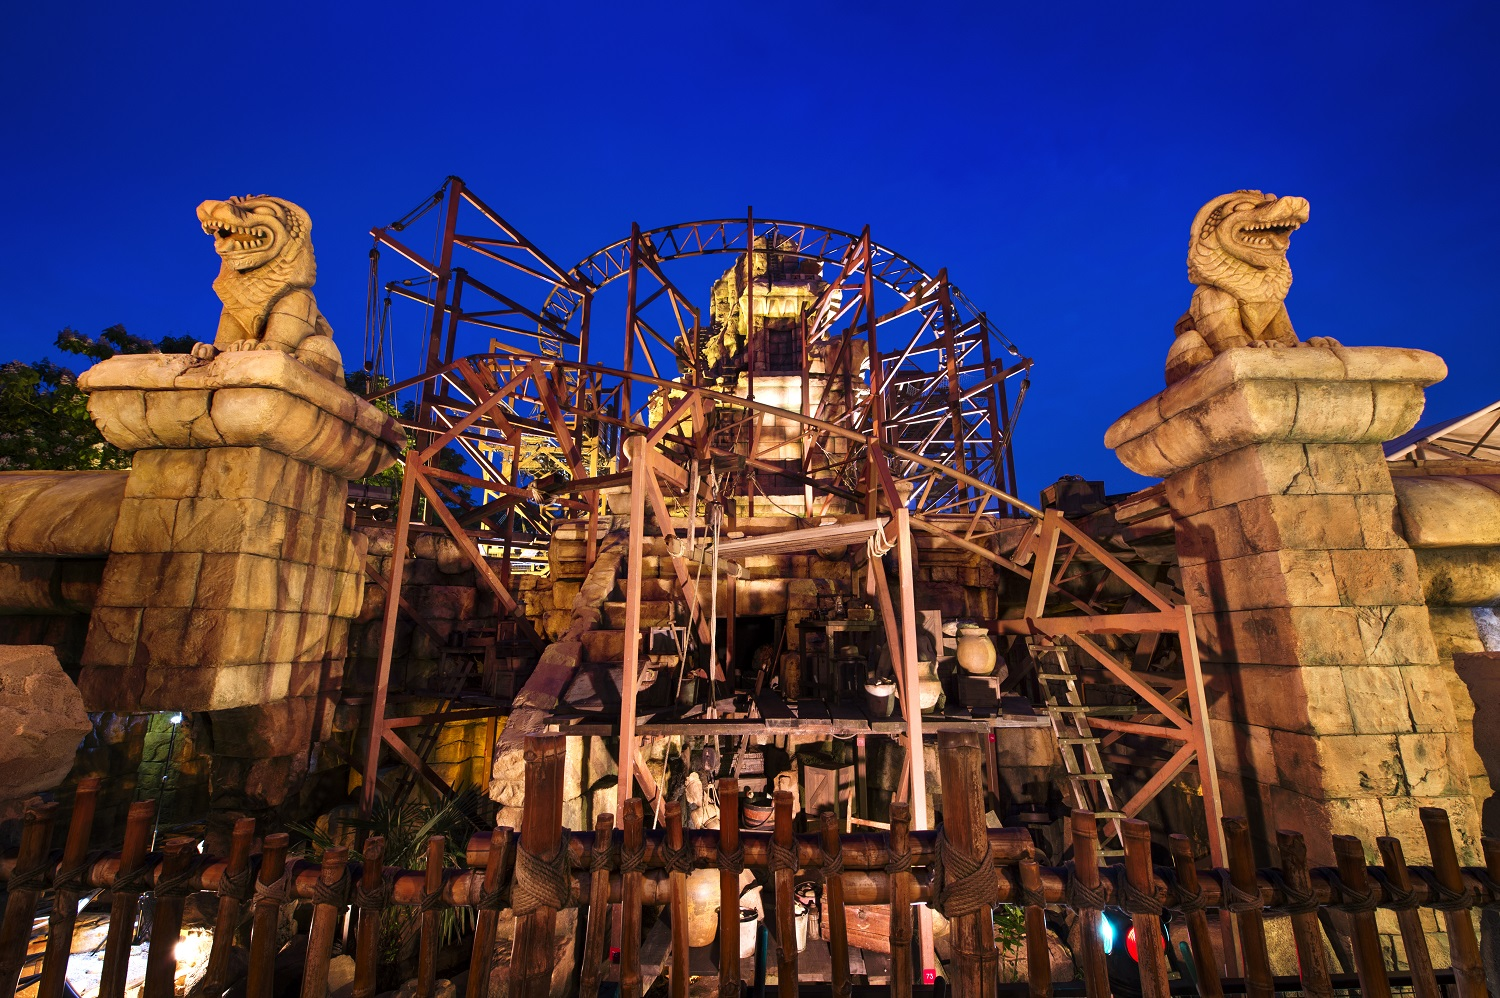 Indiana Jones ride at Disneyland Paris